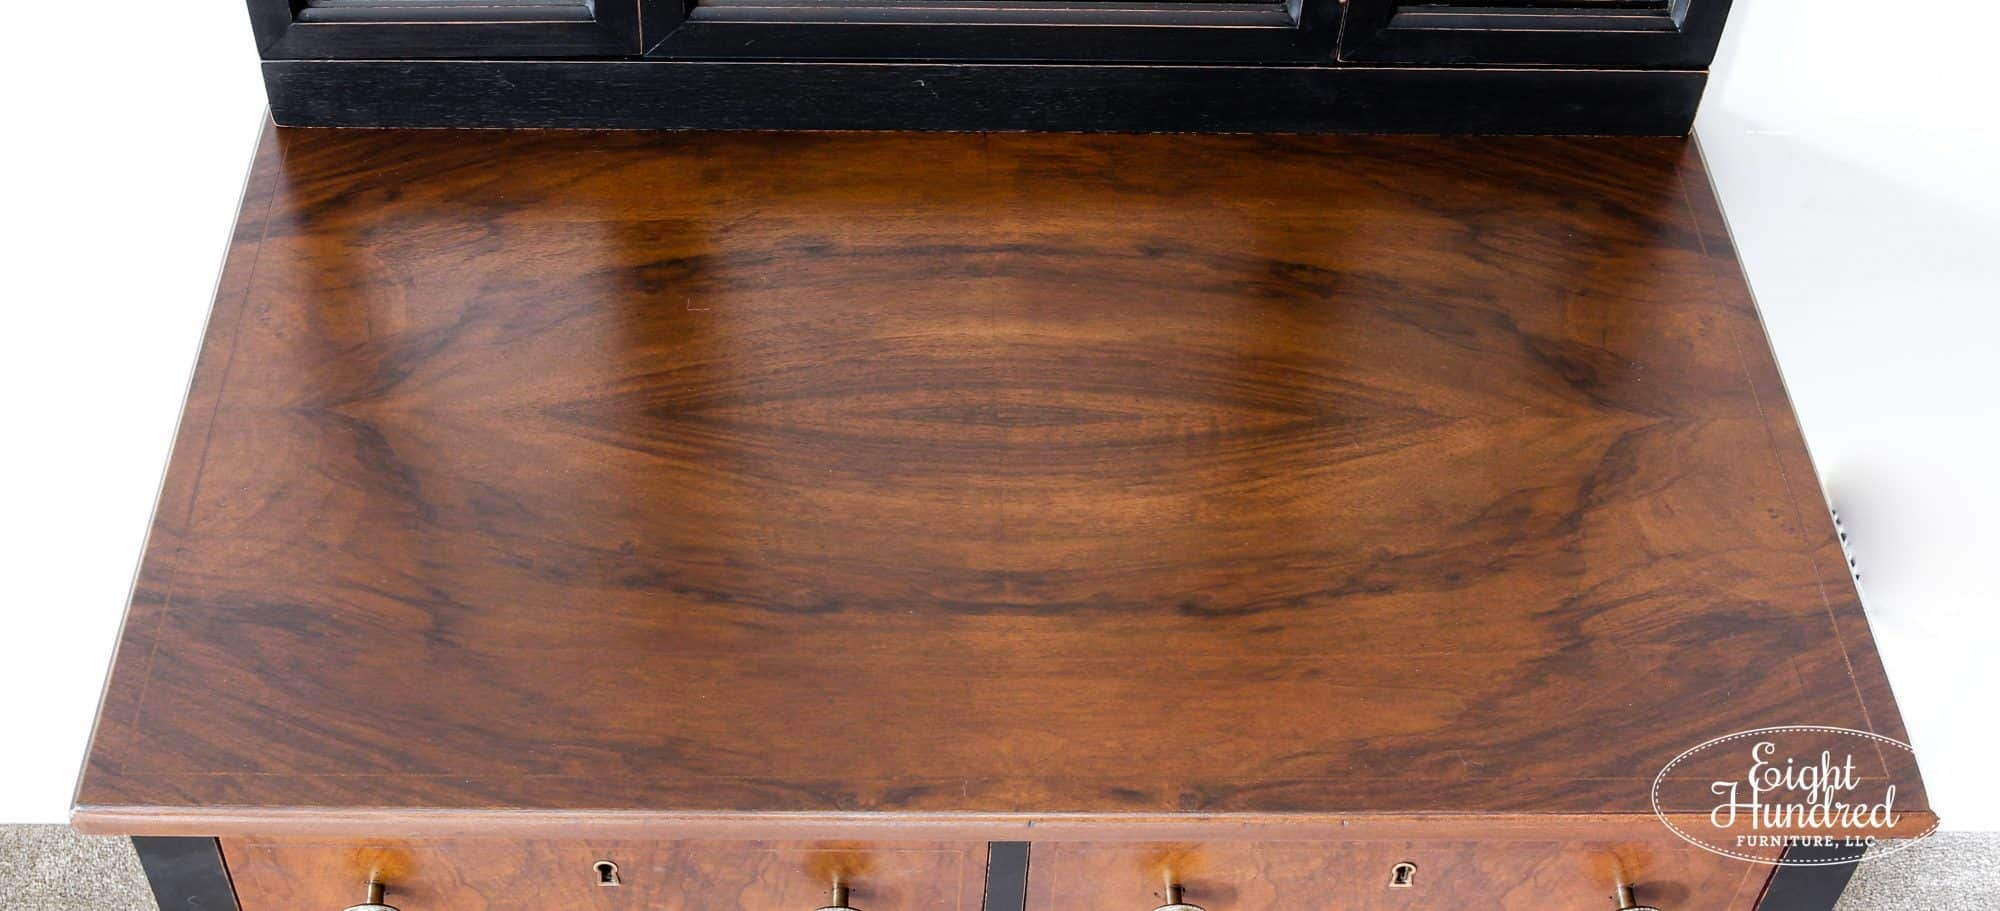 Antique Walnut Gel Stain, High Performance Topcoat, General Finishes, Eight Hundred Furniture